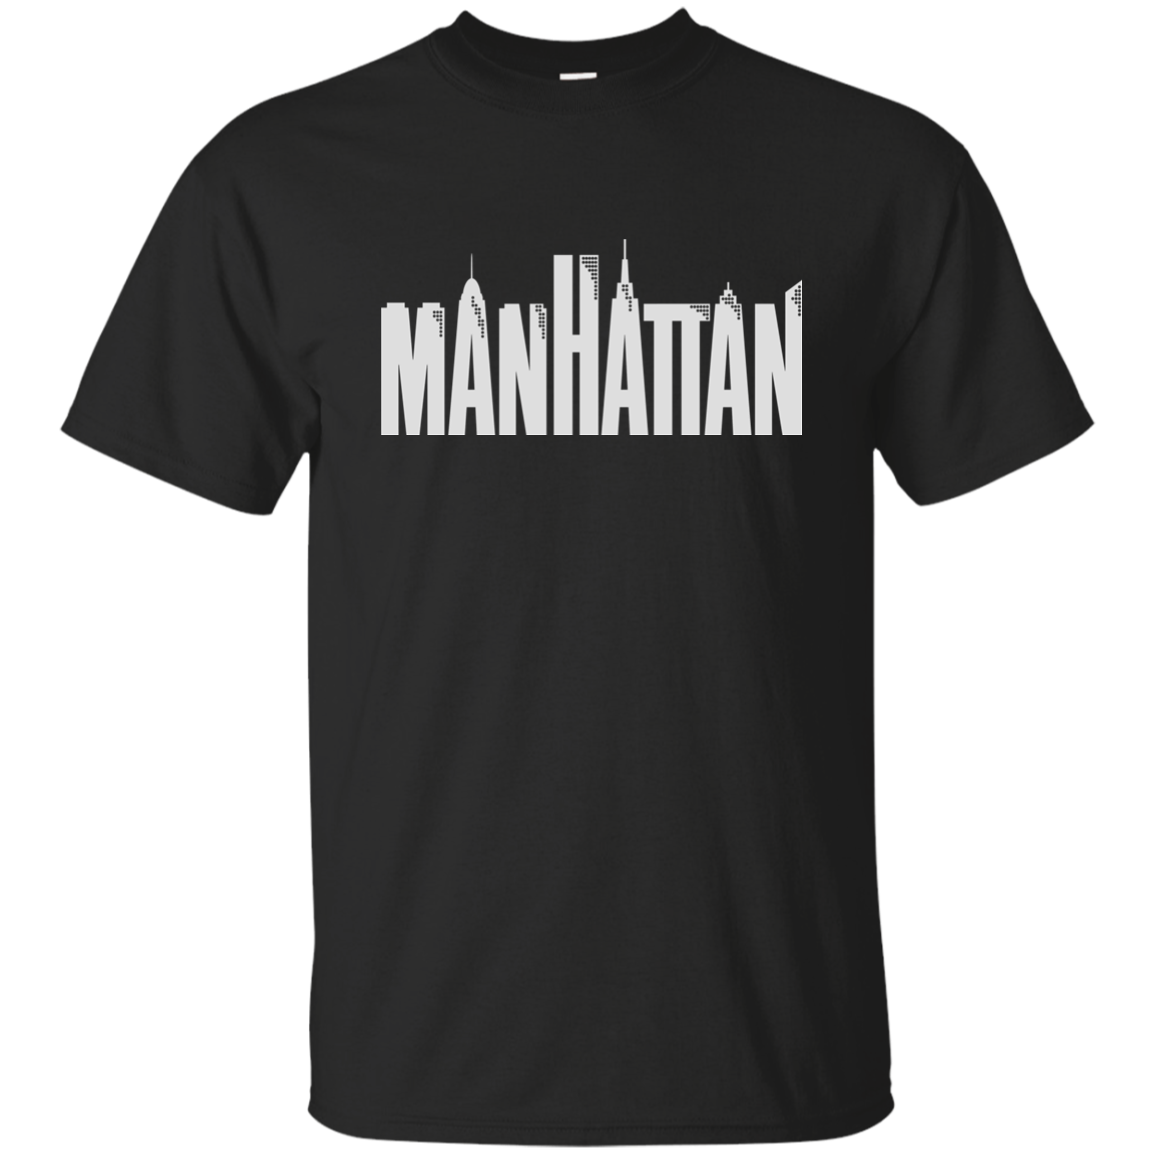 Manhattan, Woody Allen, Movie, Skyline, G200 Ultra Cotton T-Shirt image